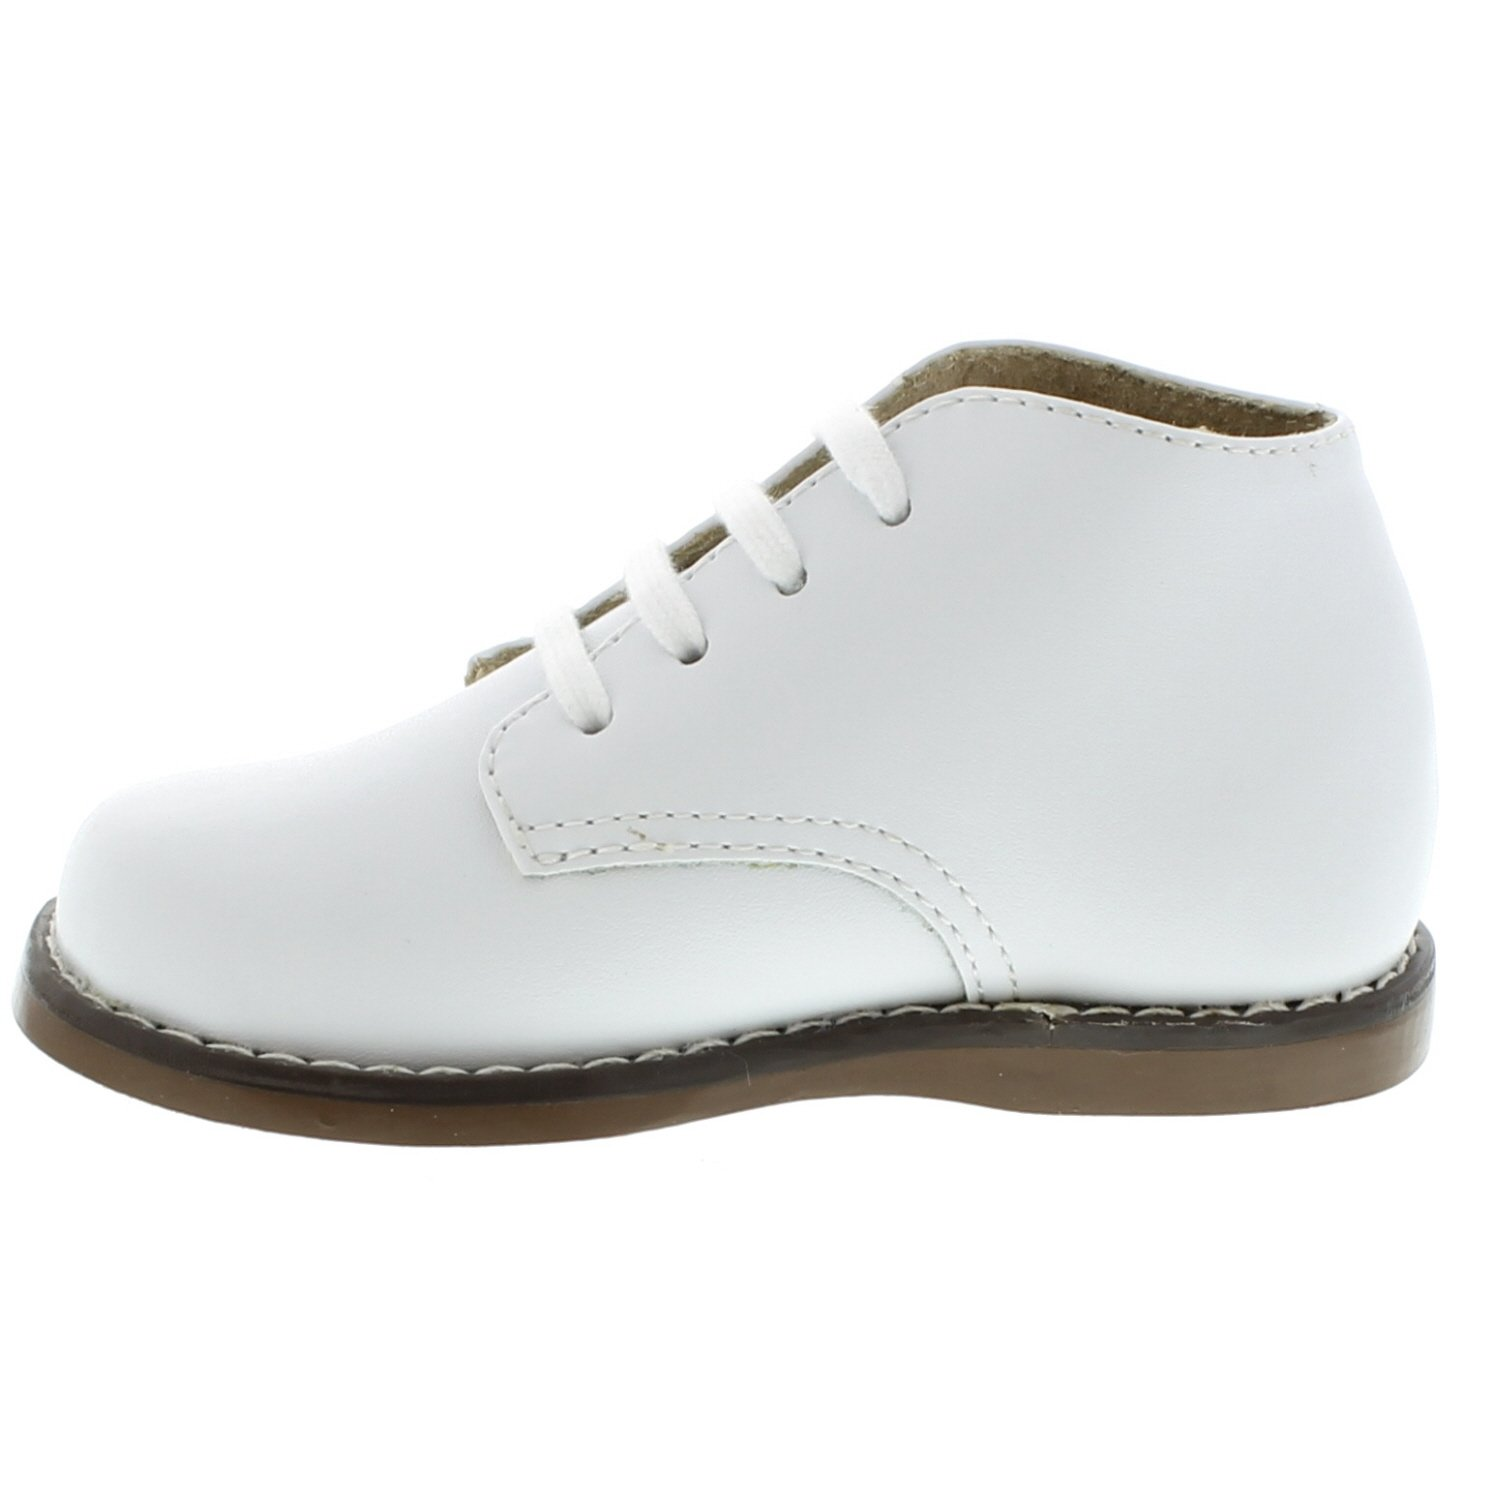 FootMates Unisex Todd 3 (Infant/Toddler) White Oxford 4 Toddler M/W by FOOTMATES (Image #6)